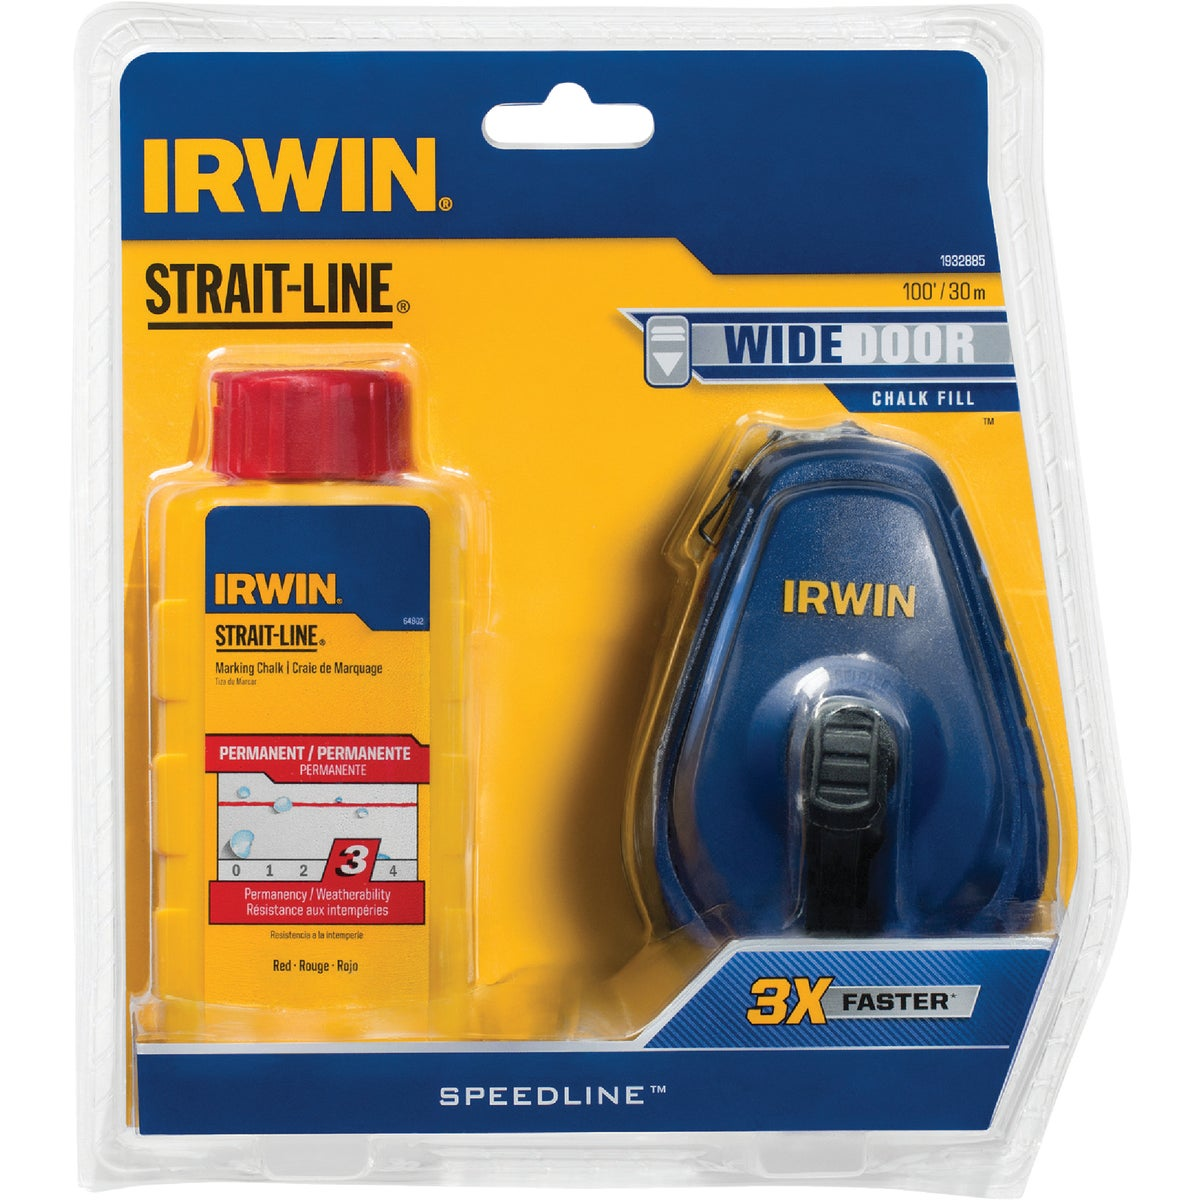 100' RED CHALK REEL - 64495 by Irwin Industr Tool